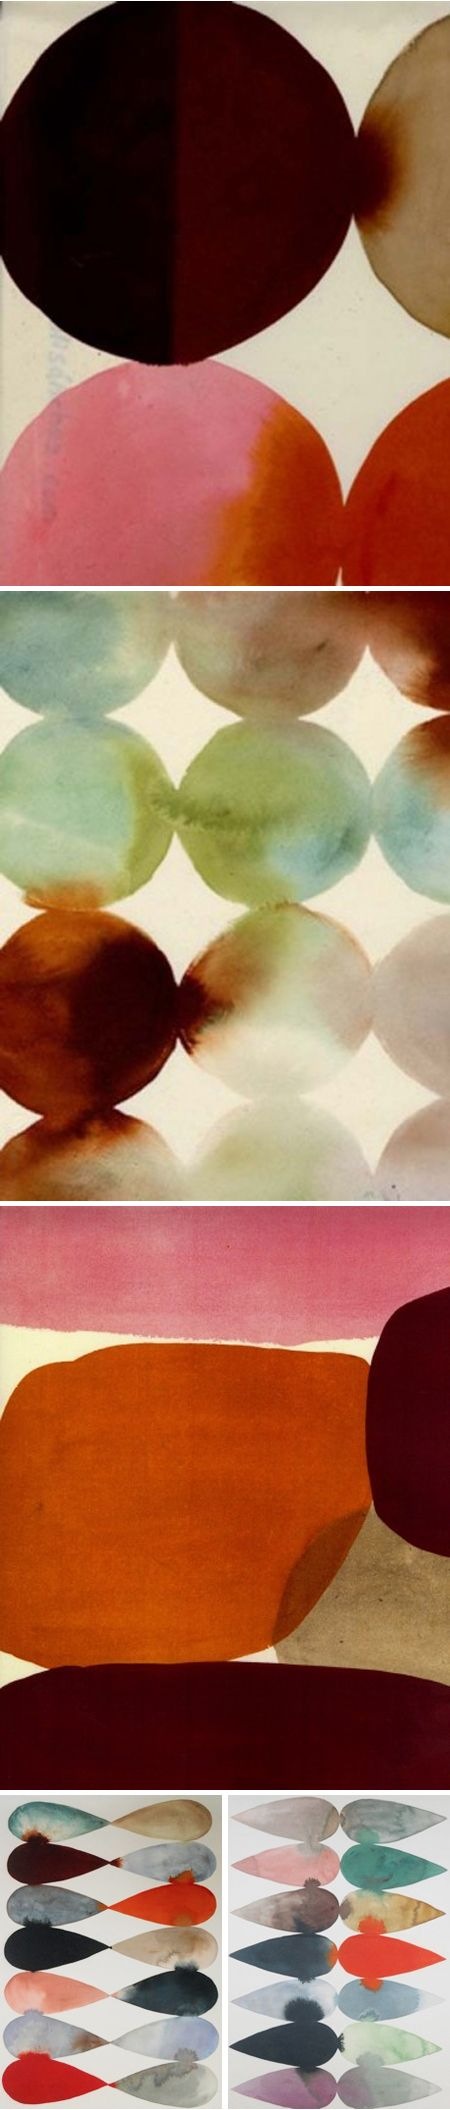 Simply Stunning Watercolors